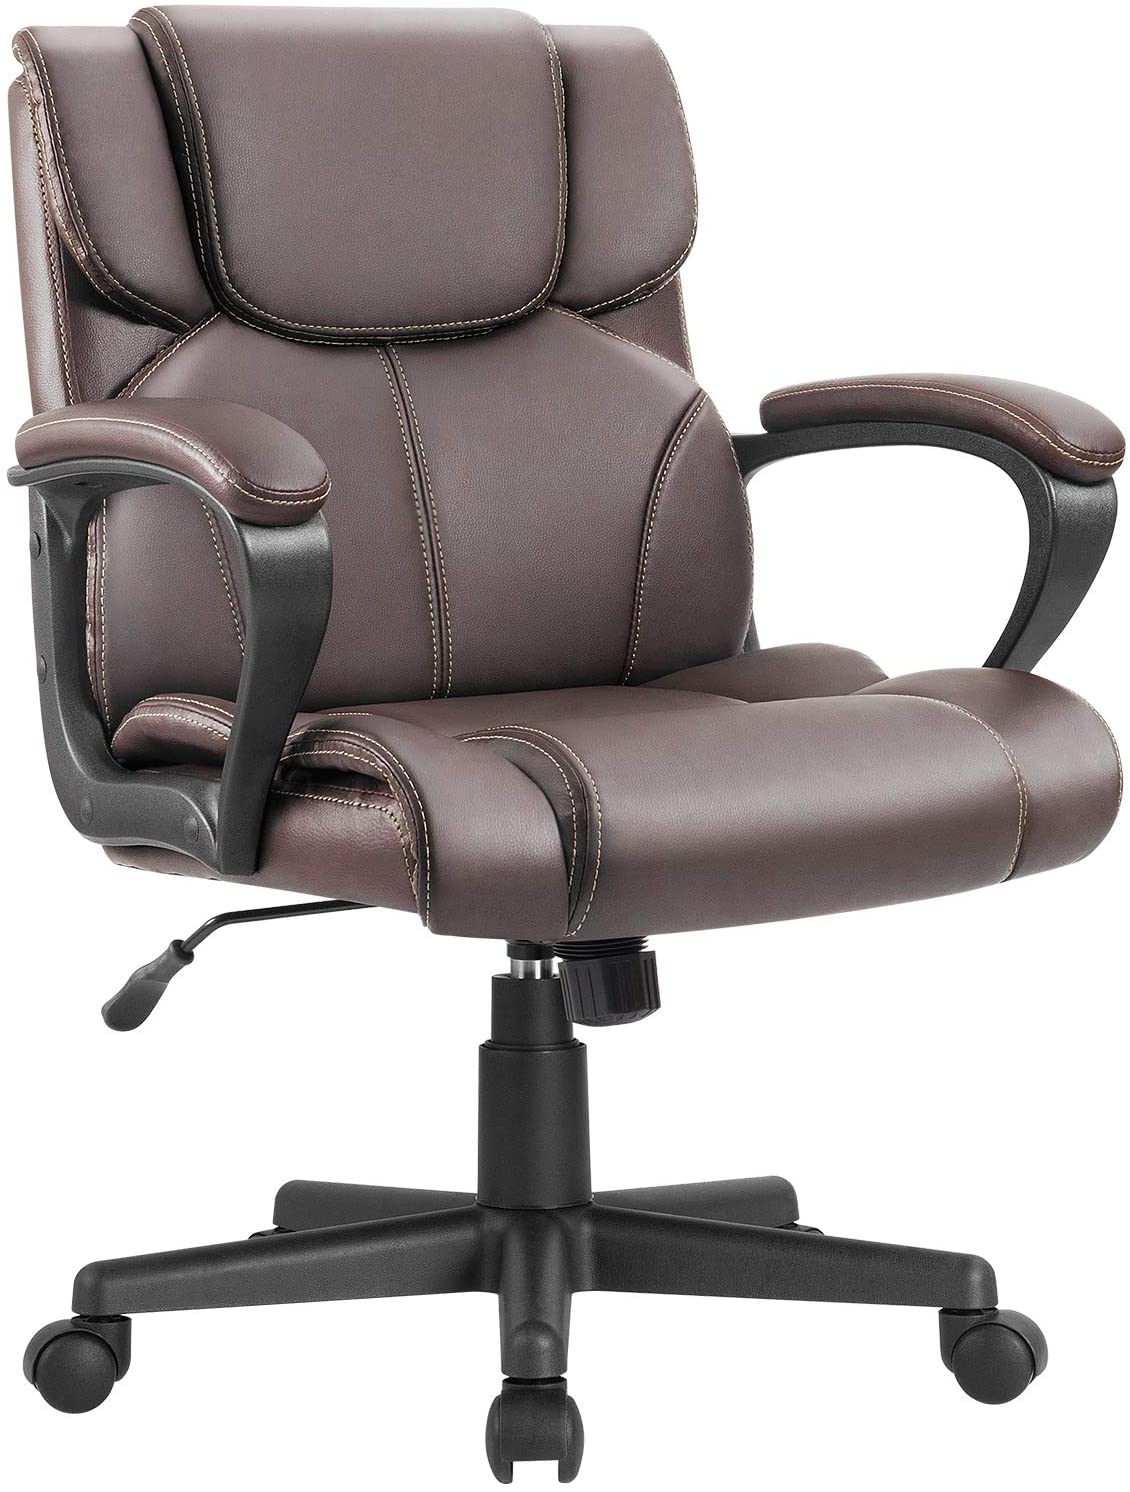 Furmax Mid Back Executive Office Chair Swivel Computer Task Chair with Armrests,Ergonomic Leather-Padded Desk Chair with Lumbar Support (Brown)